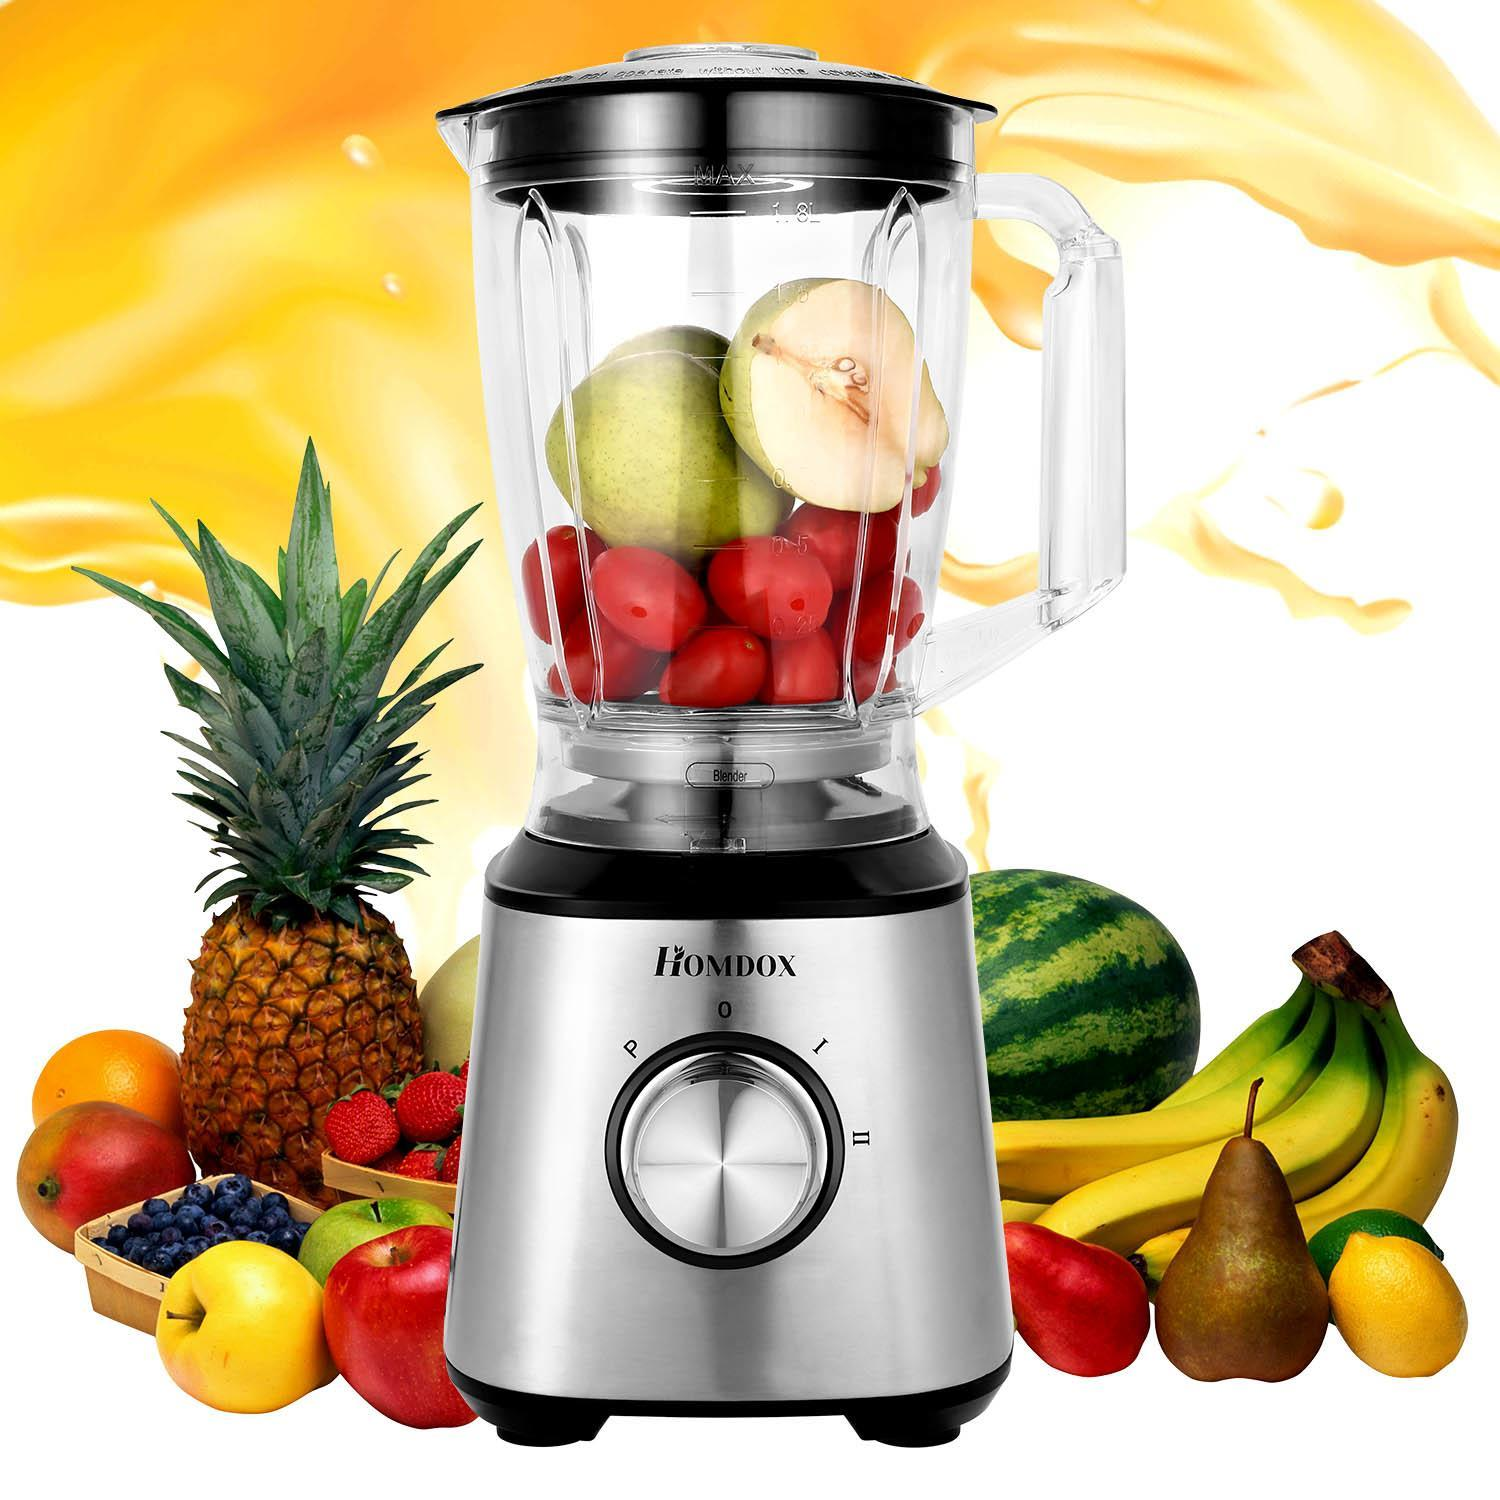 800W Blender 3-in-1 with Food Processor Attachment and1.8L Personal Blending Cup